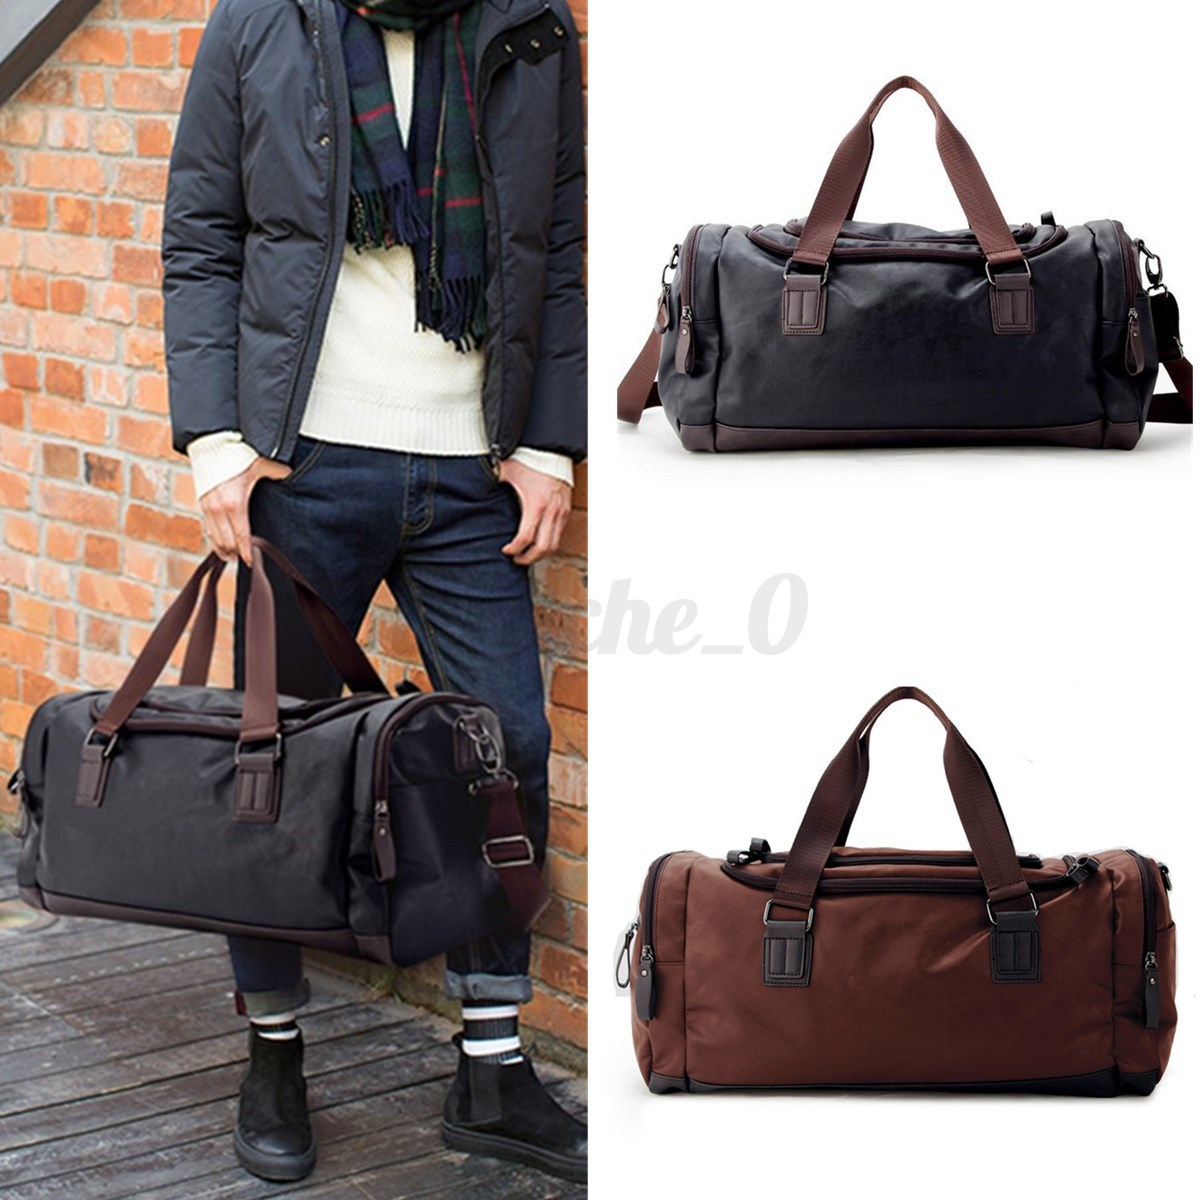 Details about Large Men s Leather Sports Duffle Bag Tote Handbag Travel Gym  Fitness Bags New 097147e2ec